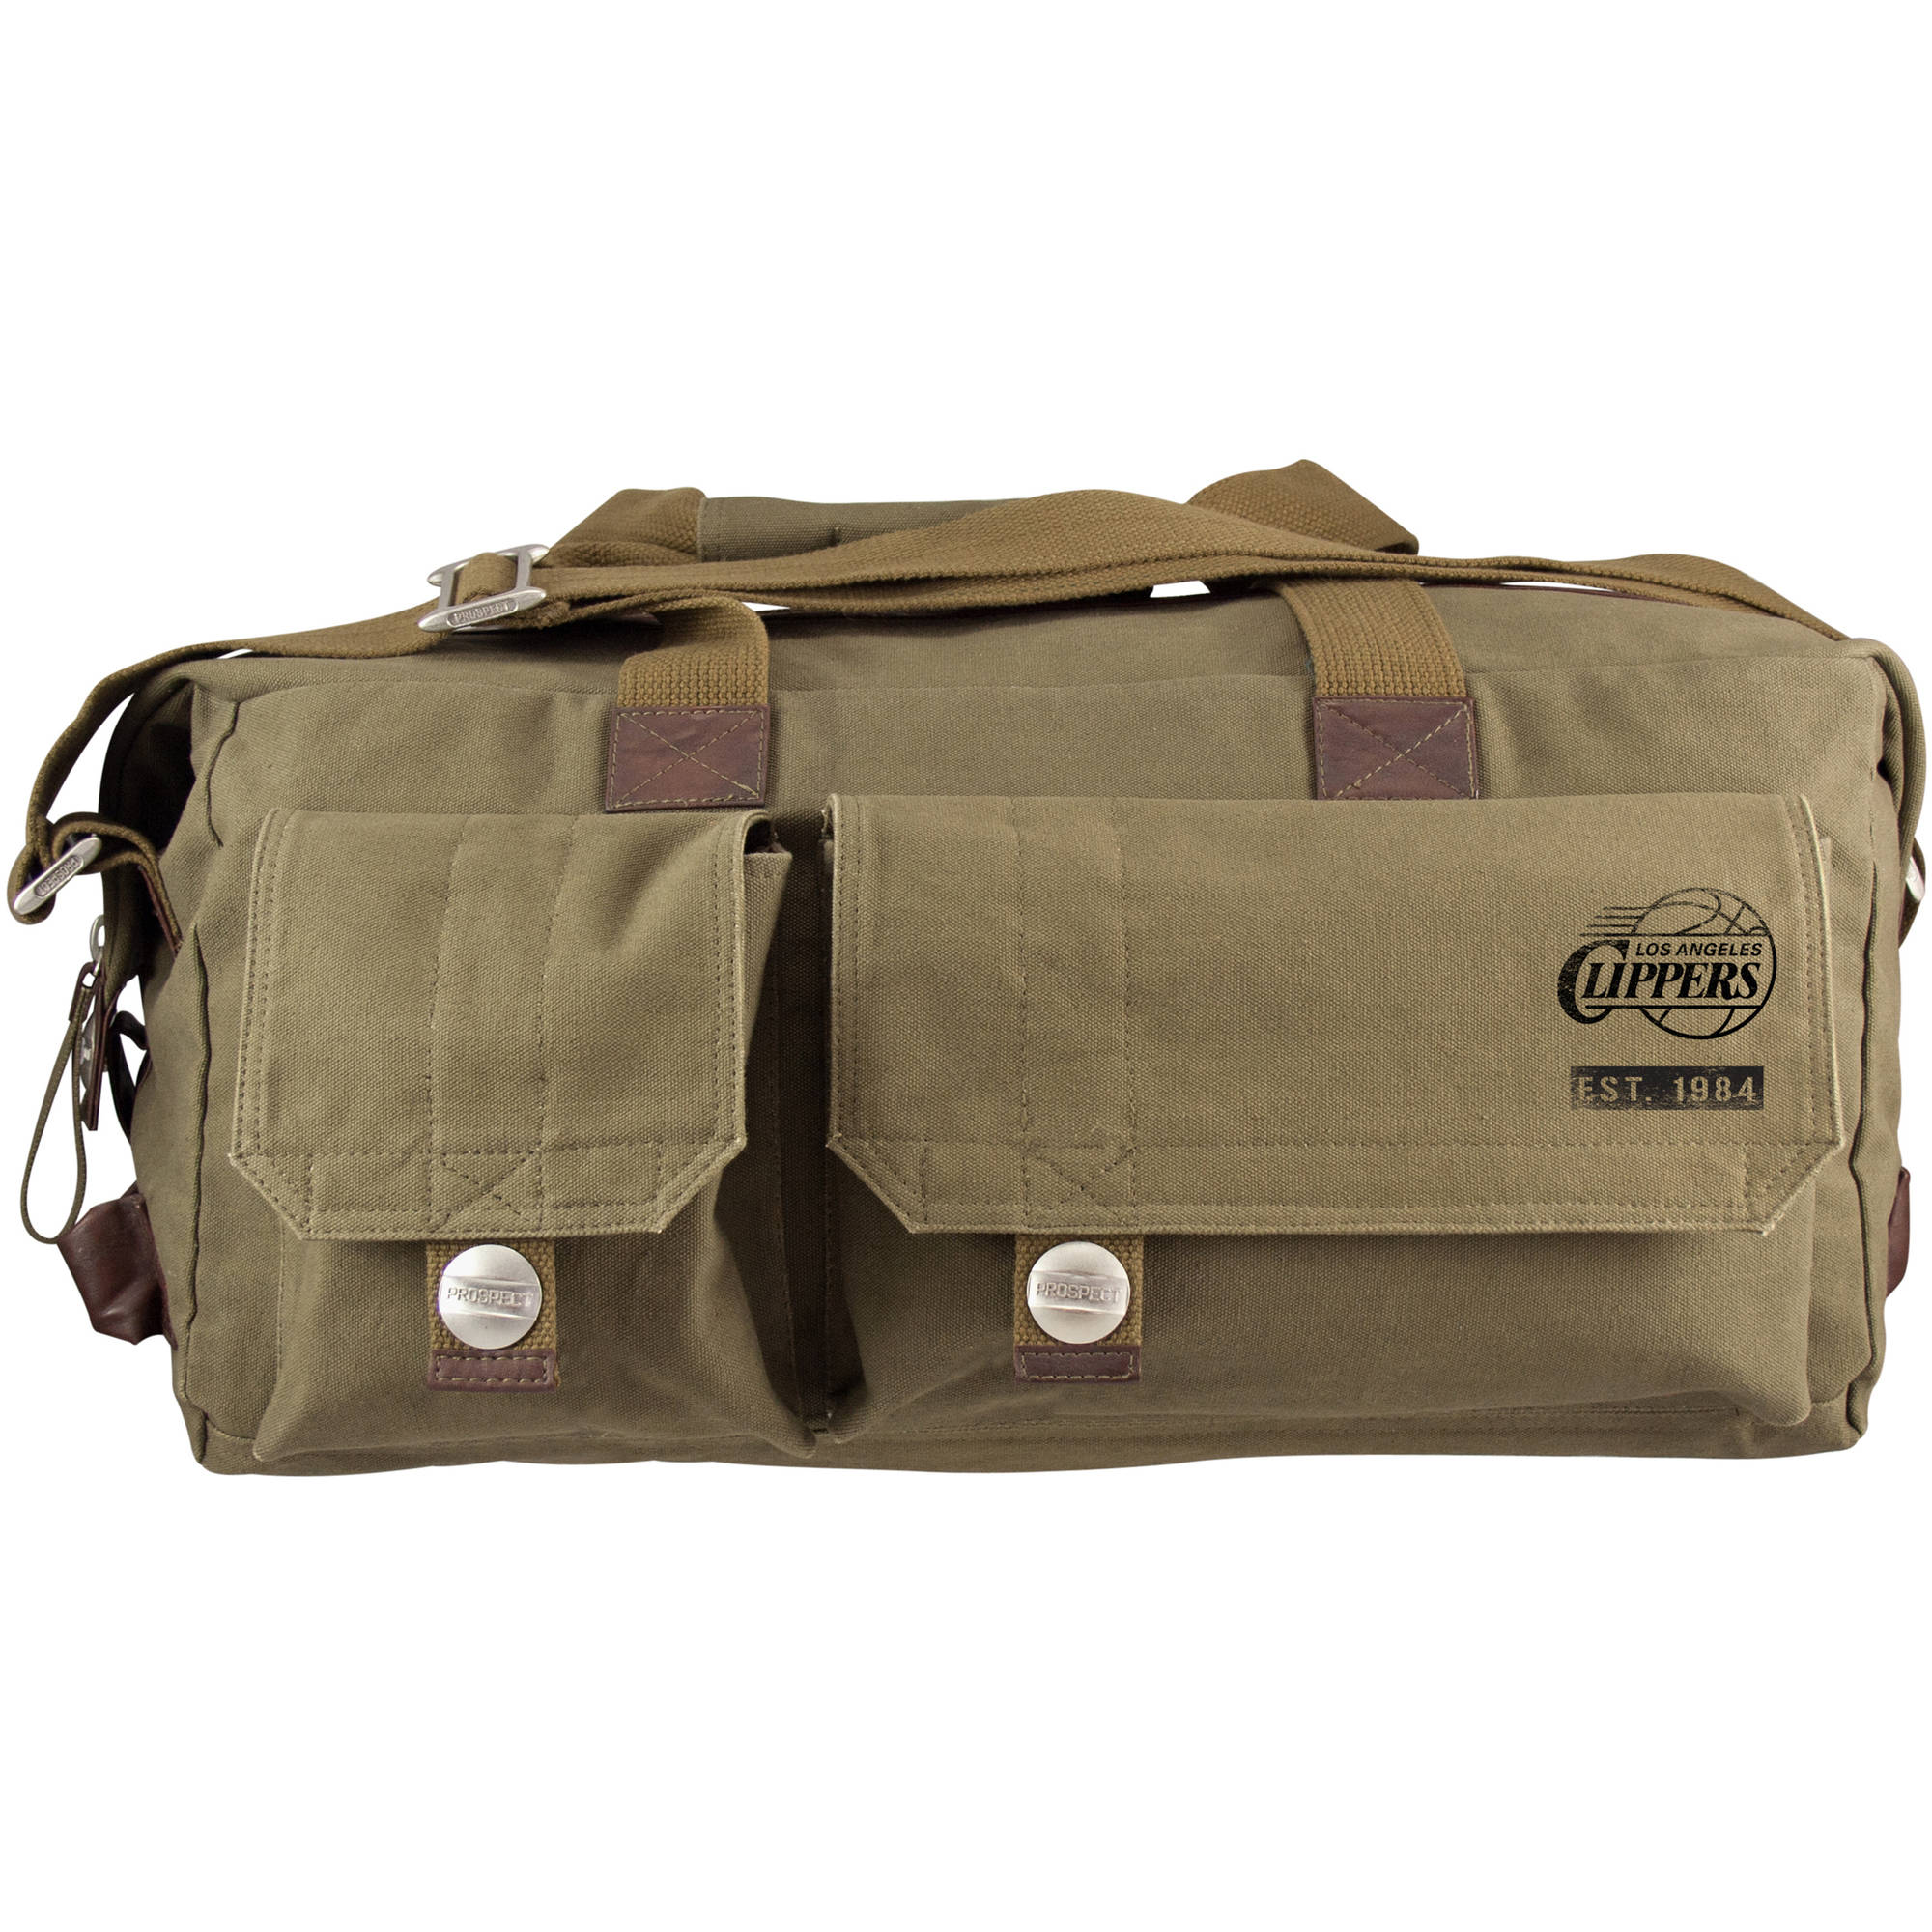 Little Earth - NBA Large Prospect Weekender Bag, Los Angeles Clippers